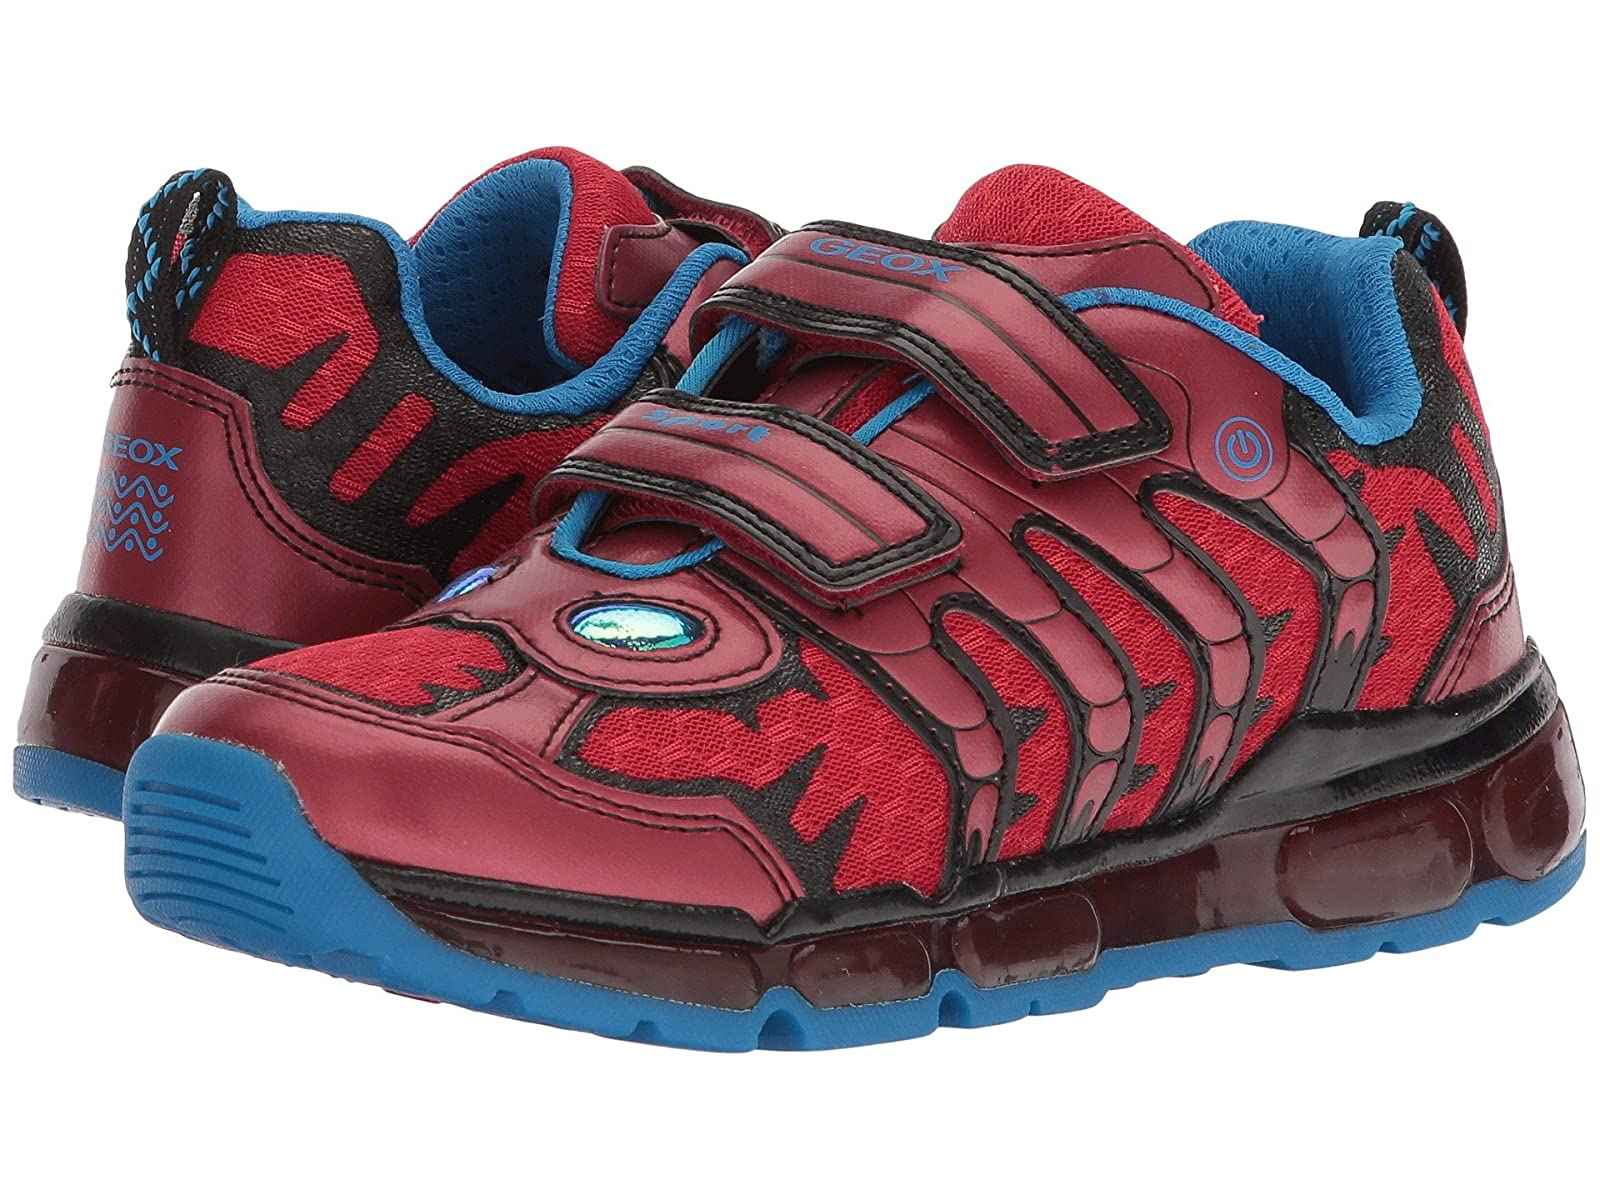 Geox Kids Android 16 (Little Kid/Big Kid)Atmospheric grades have affordable shoes